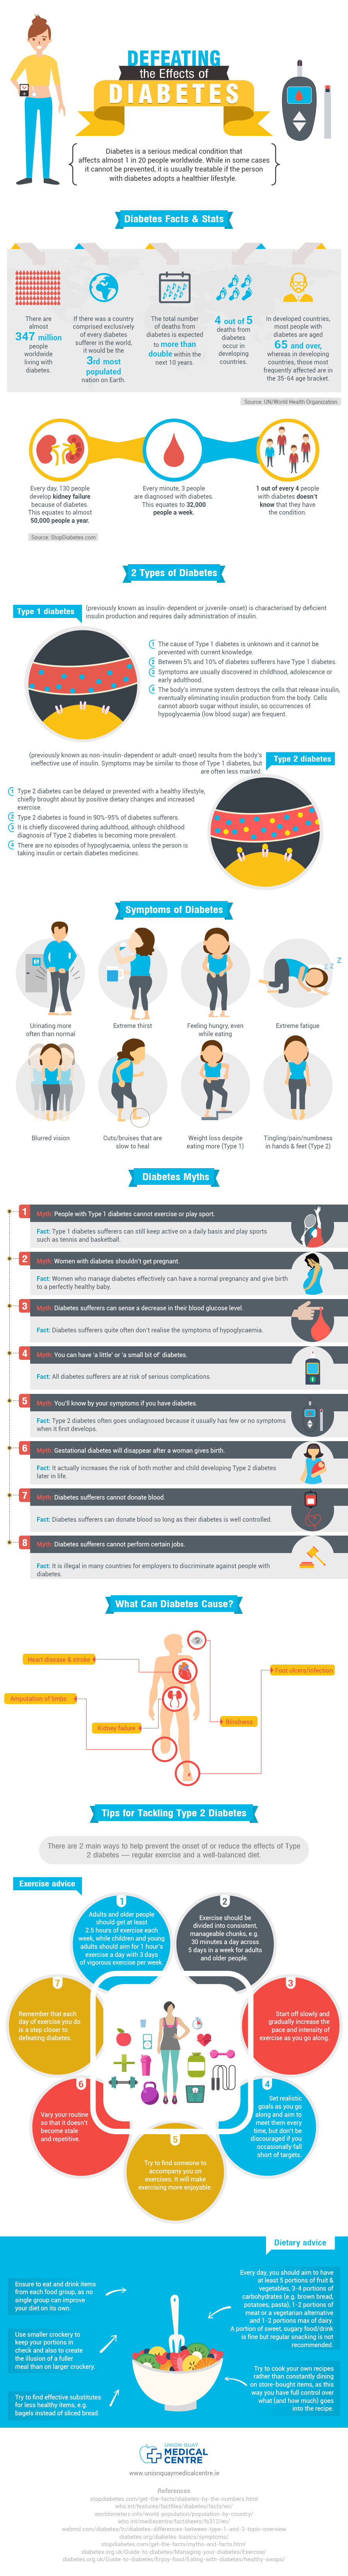 Defeating the Effects of Diabetes - Infographic